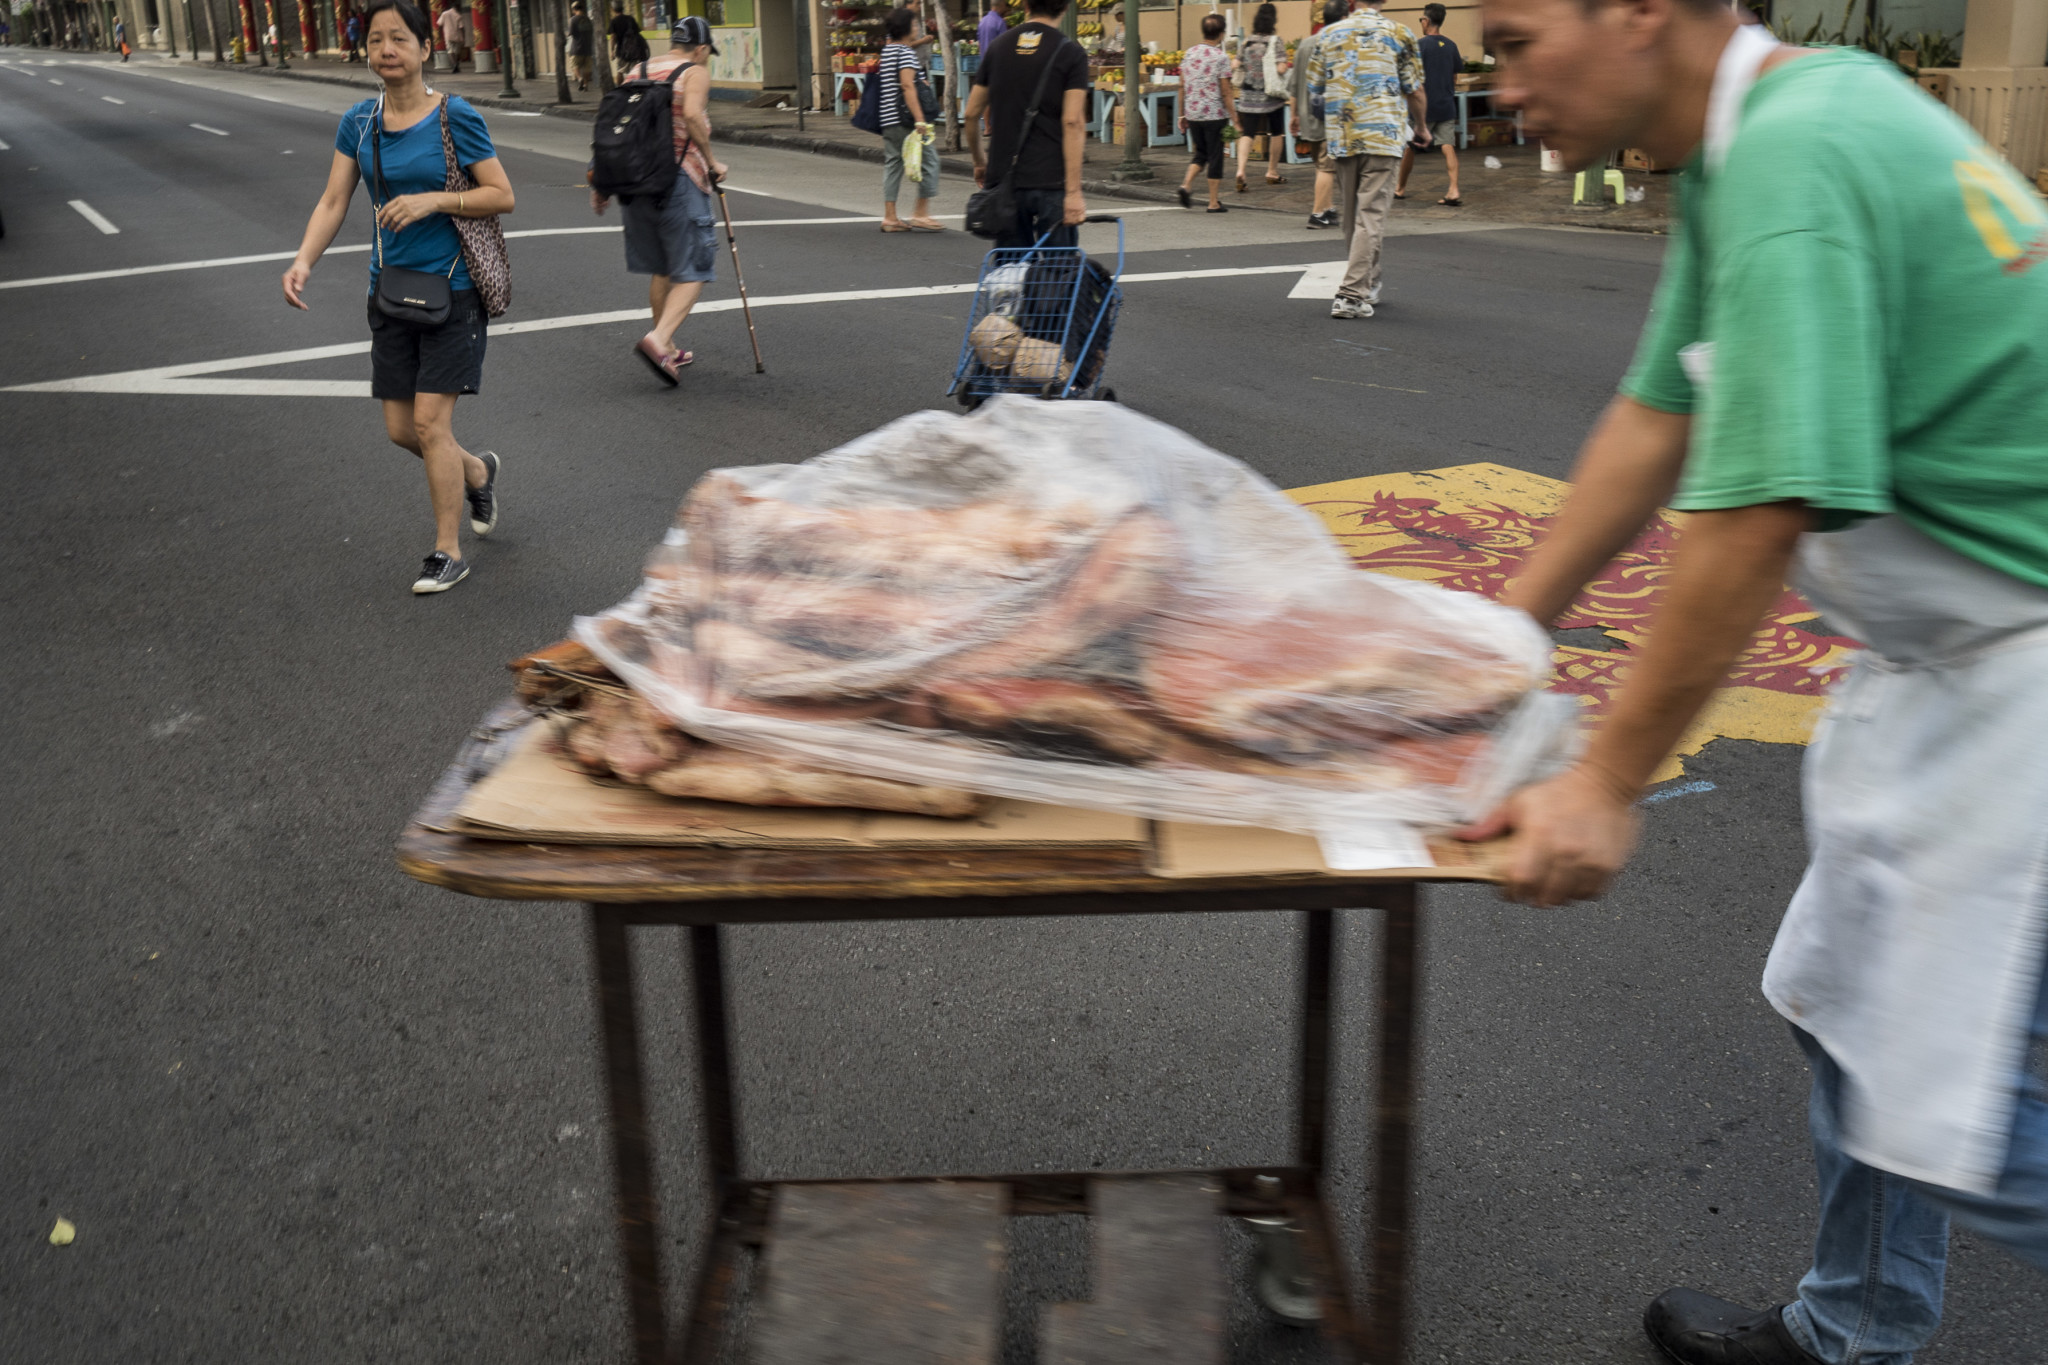 <p>After the butchering, a deep-fried pig is ready for a bulk purchase.</p>